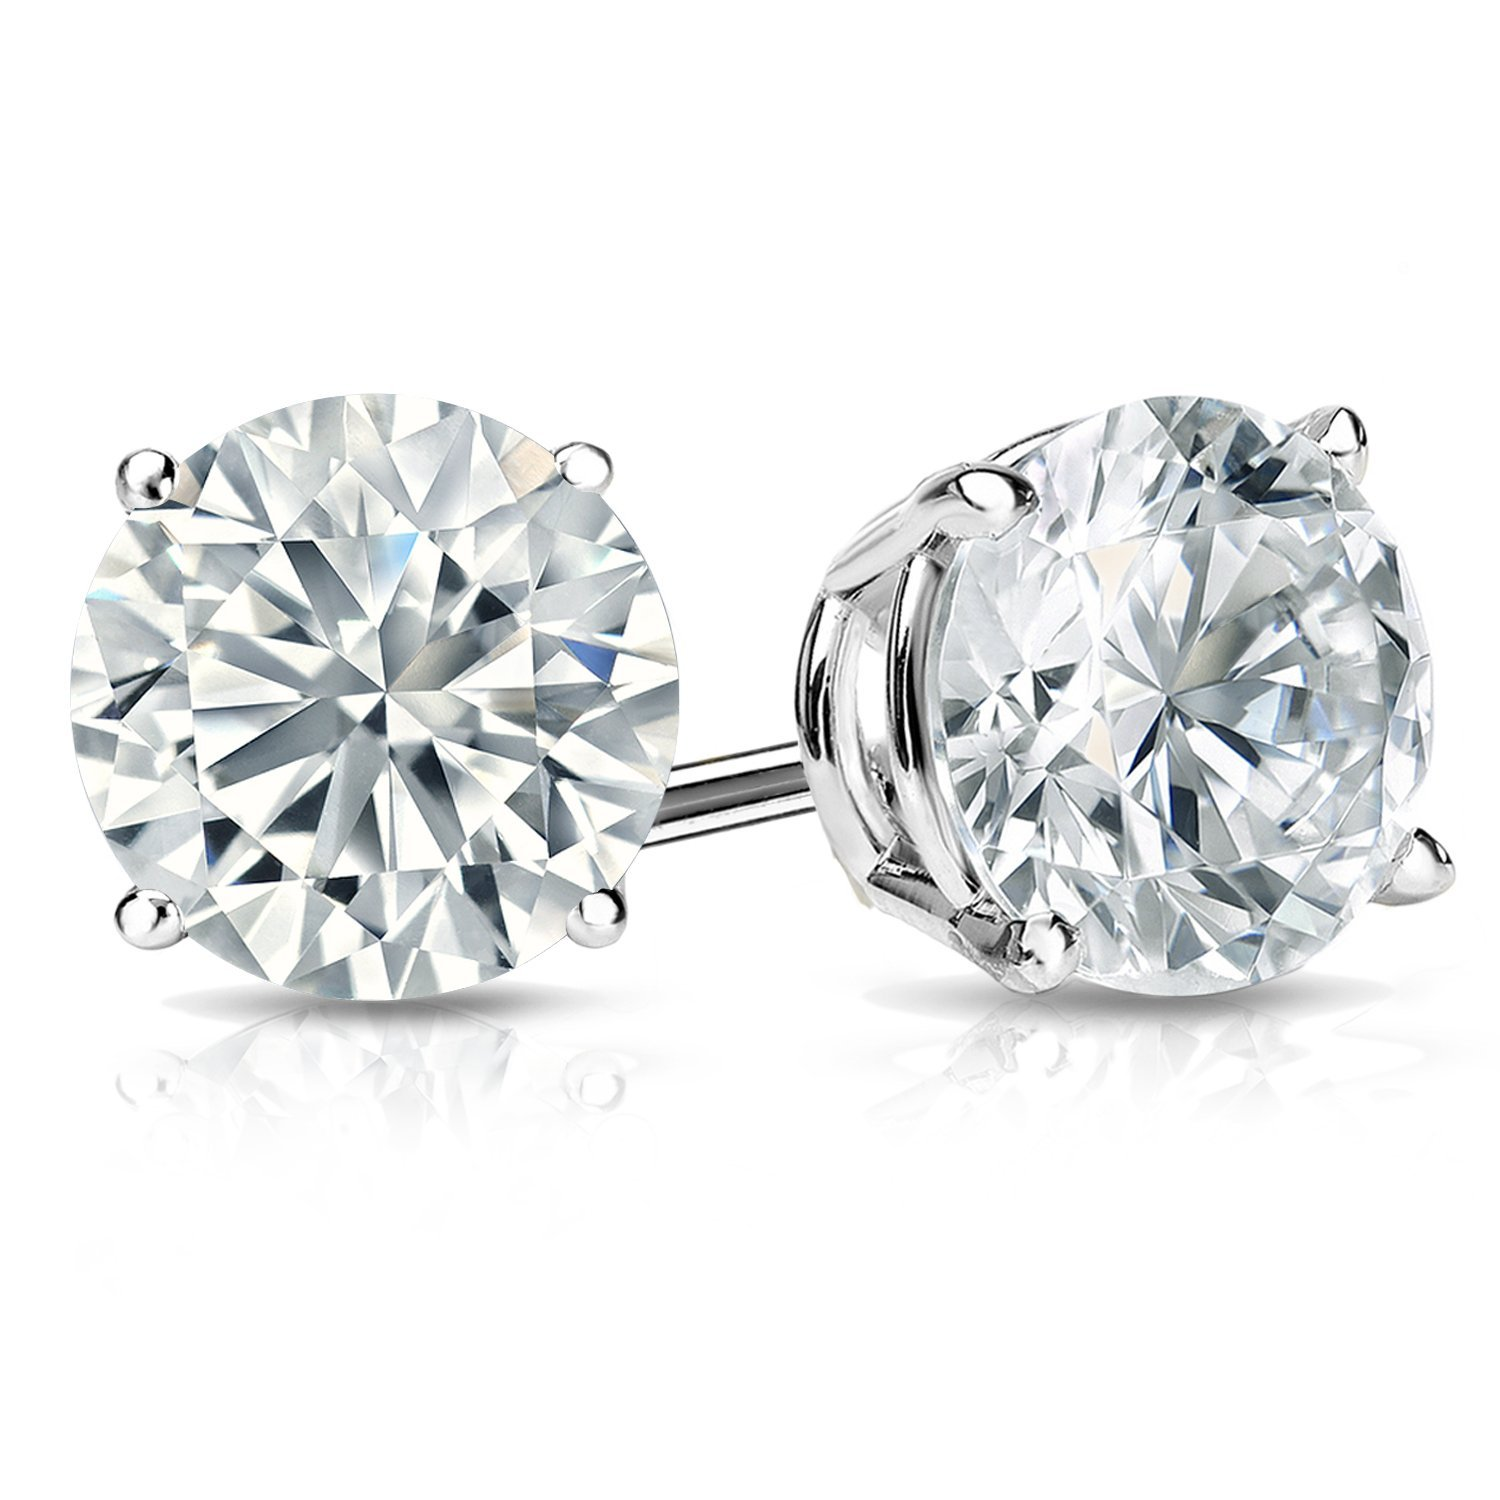 Carat Diamond Stud Earrings